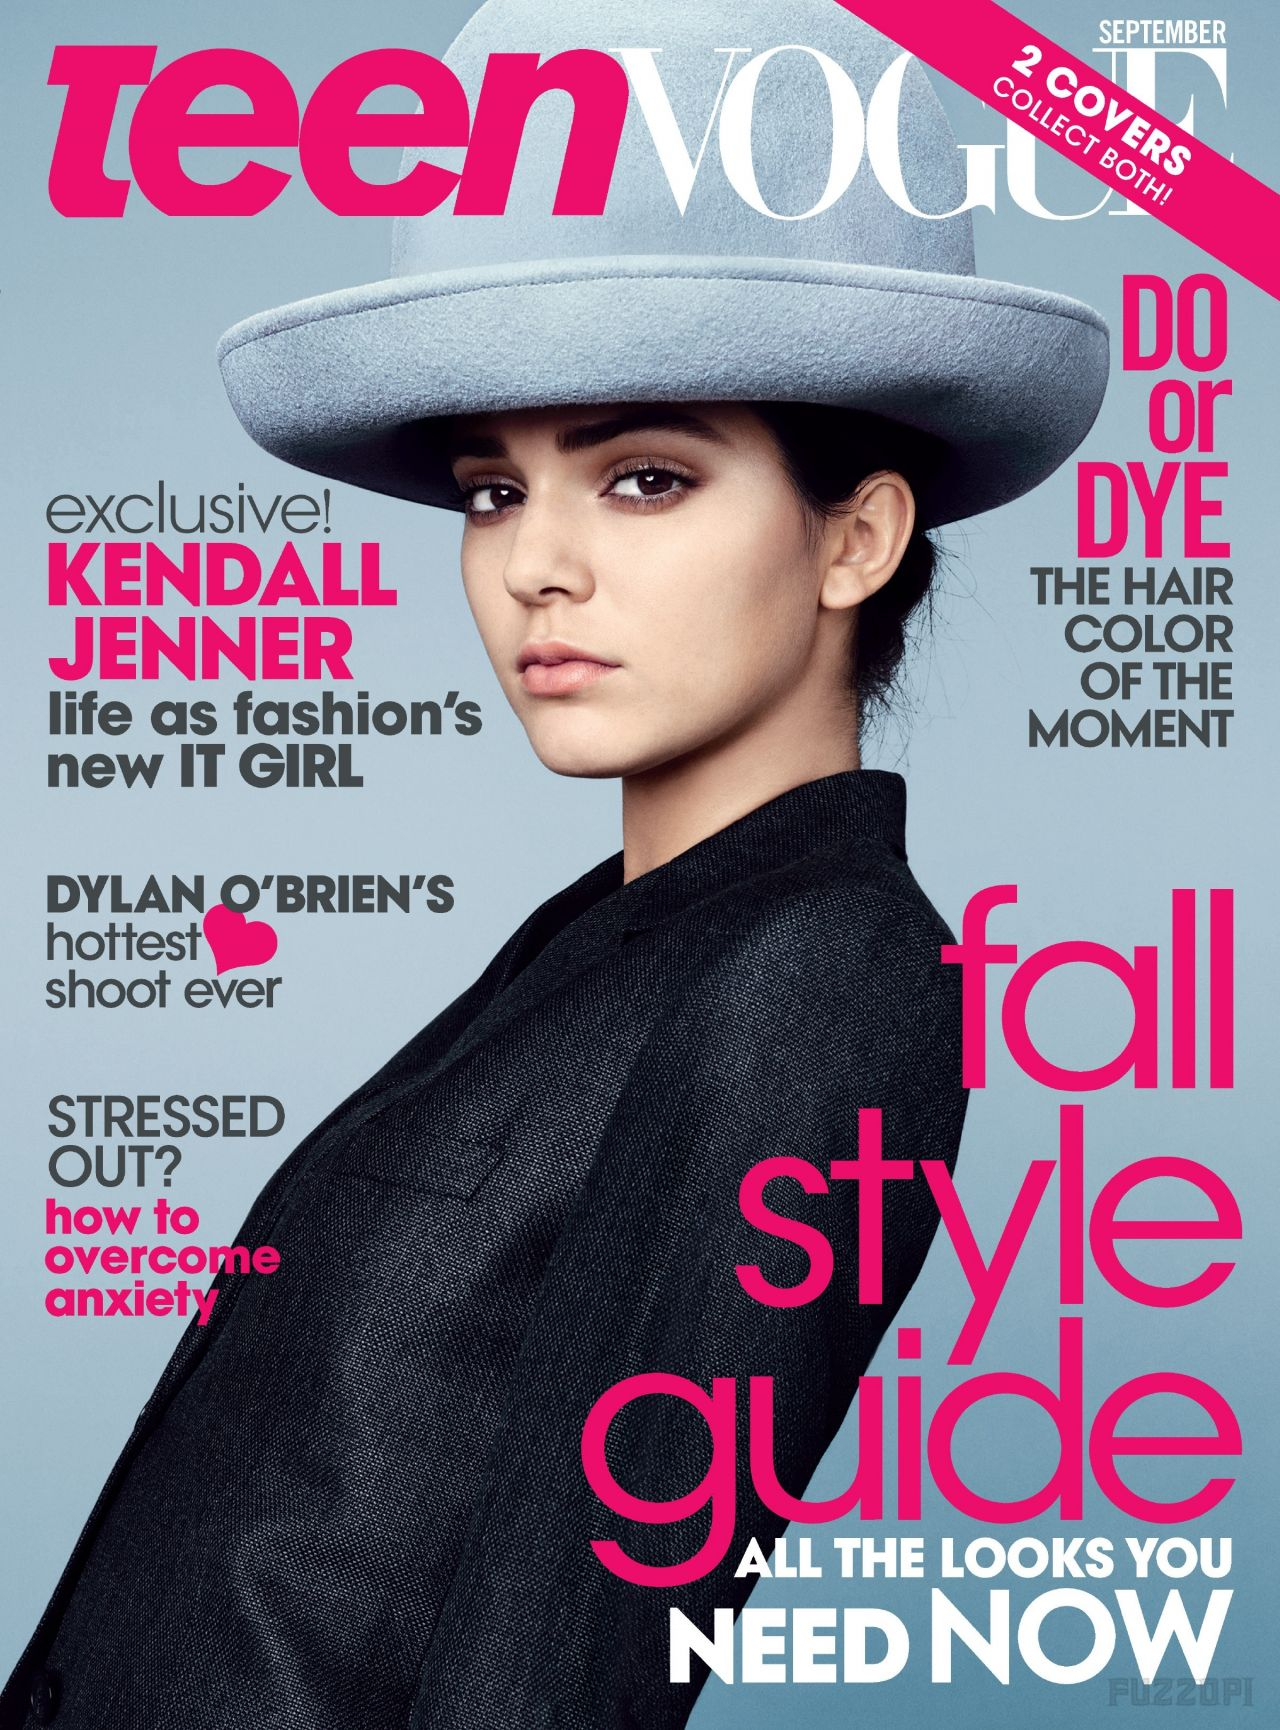 Kendall Jenner - Teen Vogue Magazine - September 2014 Cover